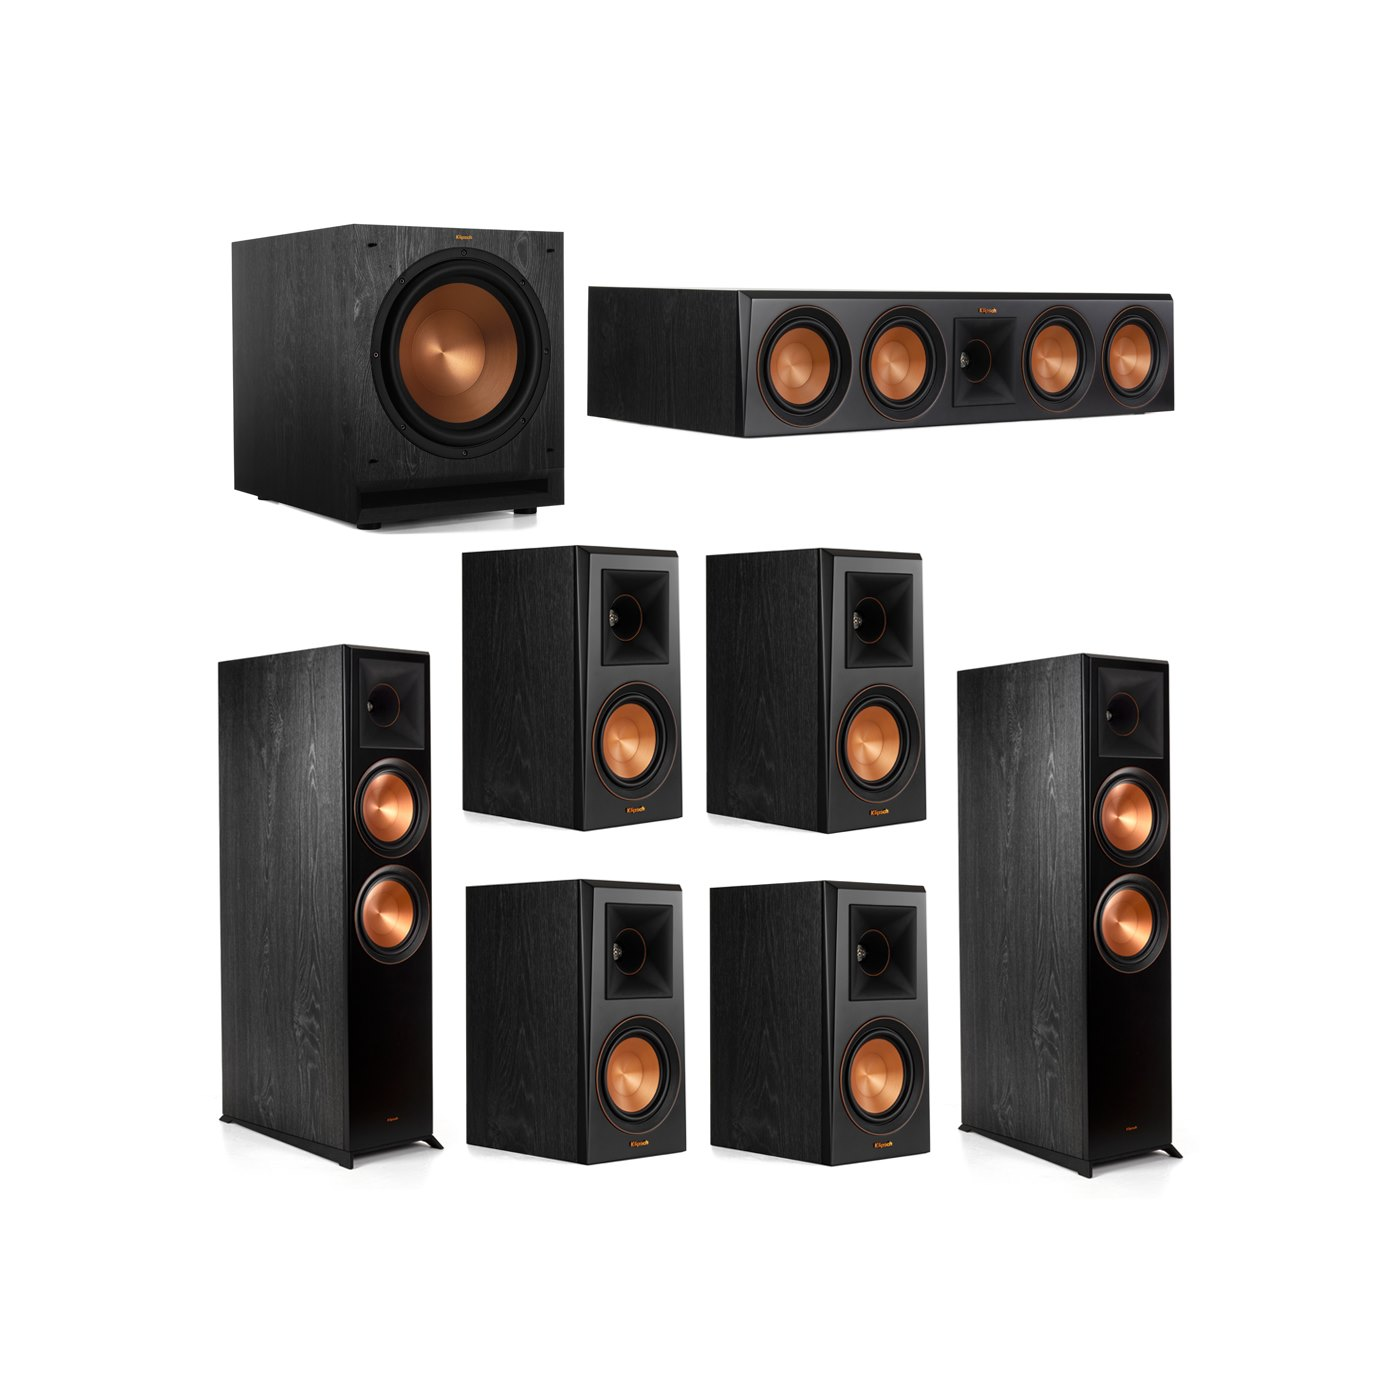 Klipsch 7.1.2 System - 2 RP-8060FA Dolby Atmos Speakers, 1 RP-504C, 4 RP-500M Speakers, 1 SPL-120